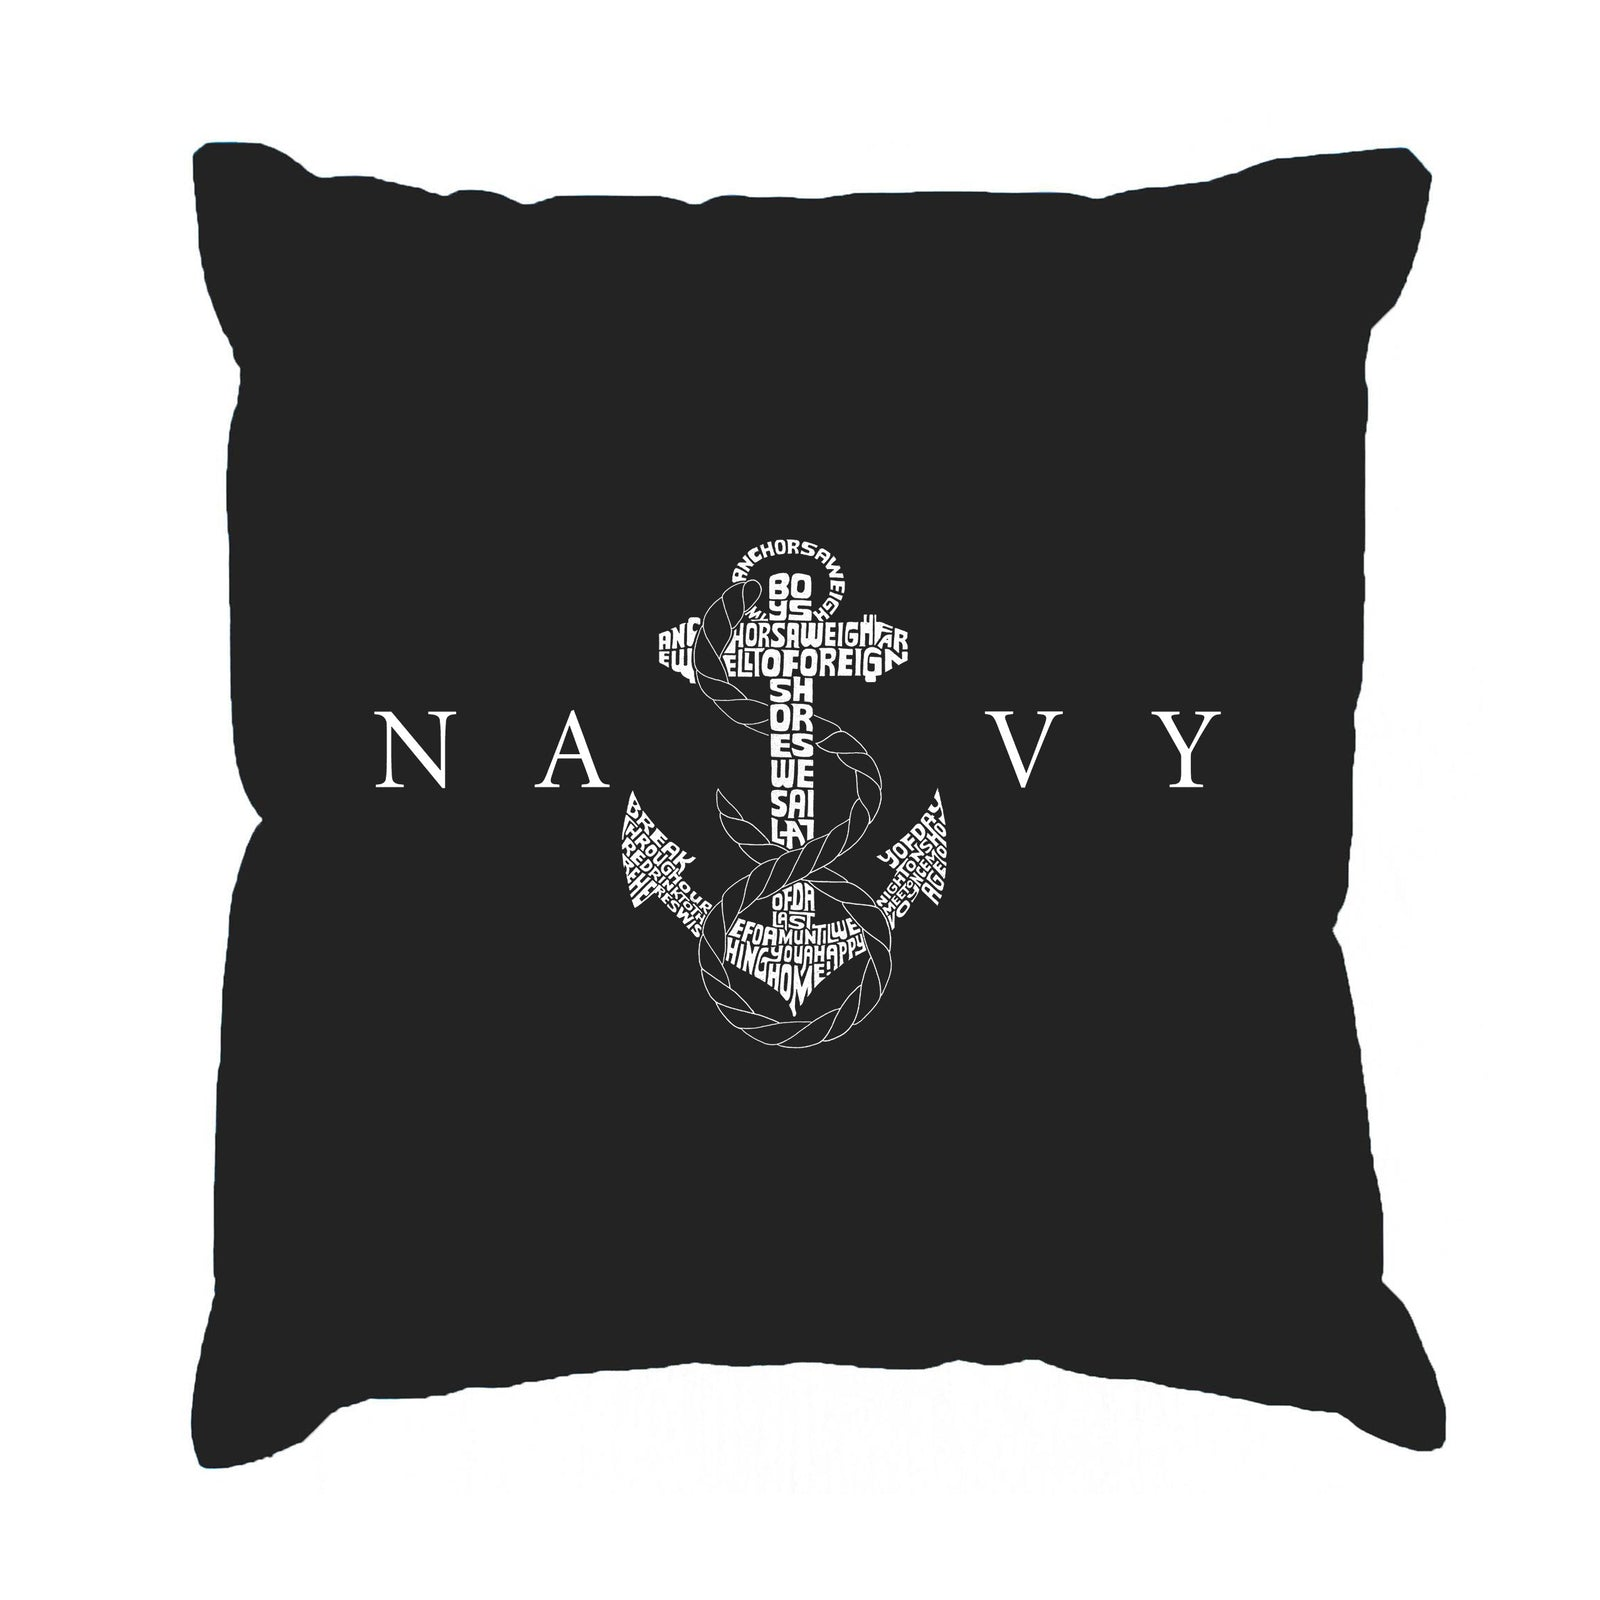 Throw Pillow Cover - LYRICS TO ANCHORS AWEIGH